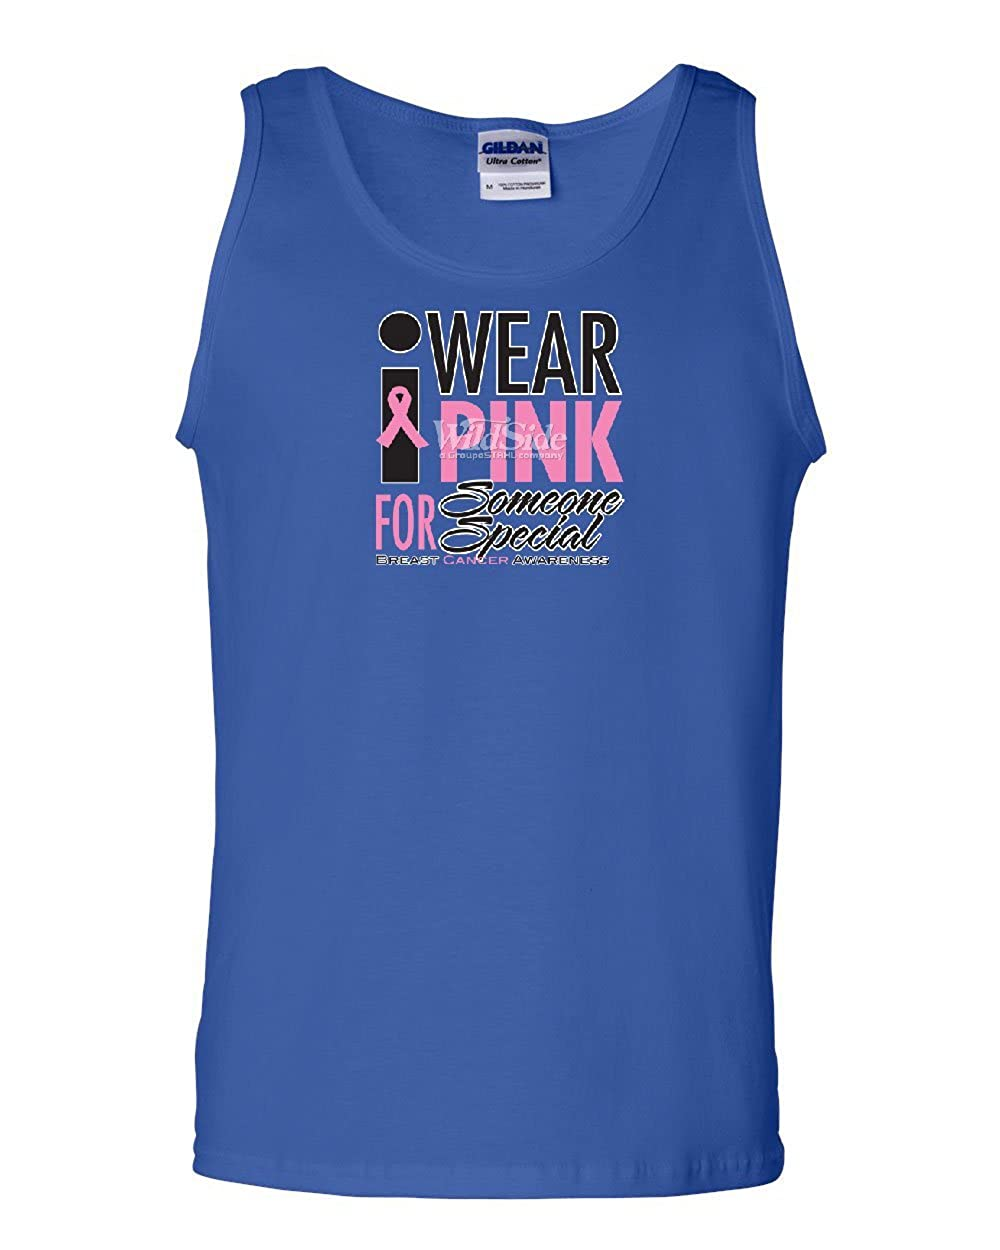 Tee Hunt I Wear Pink for Someone Special Tank Top Breast Cancer Awareness Sleeveless